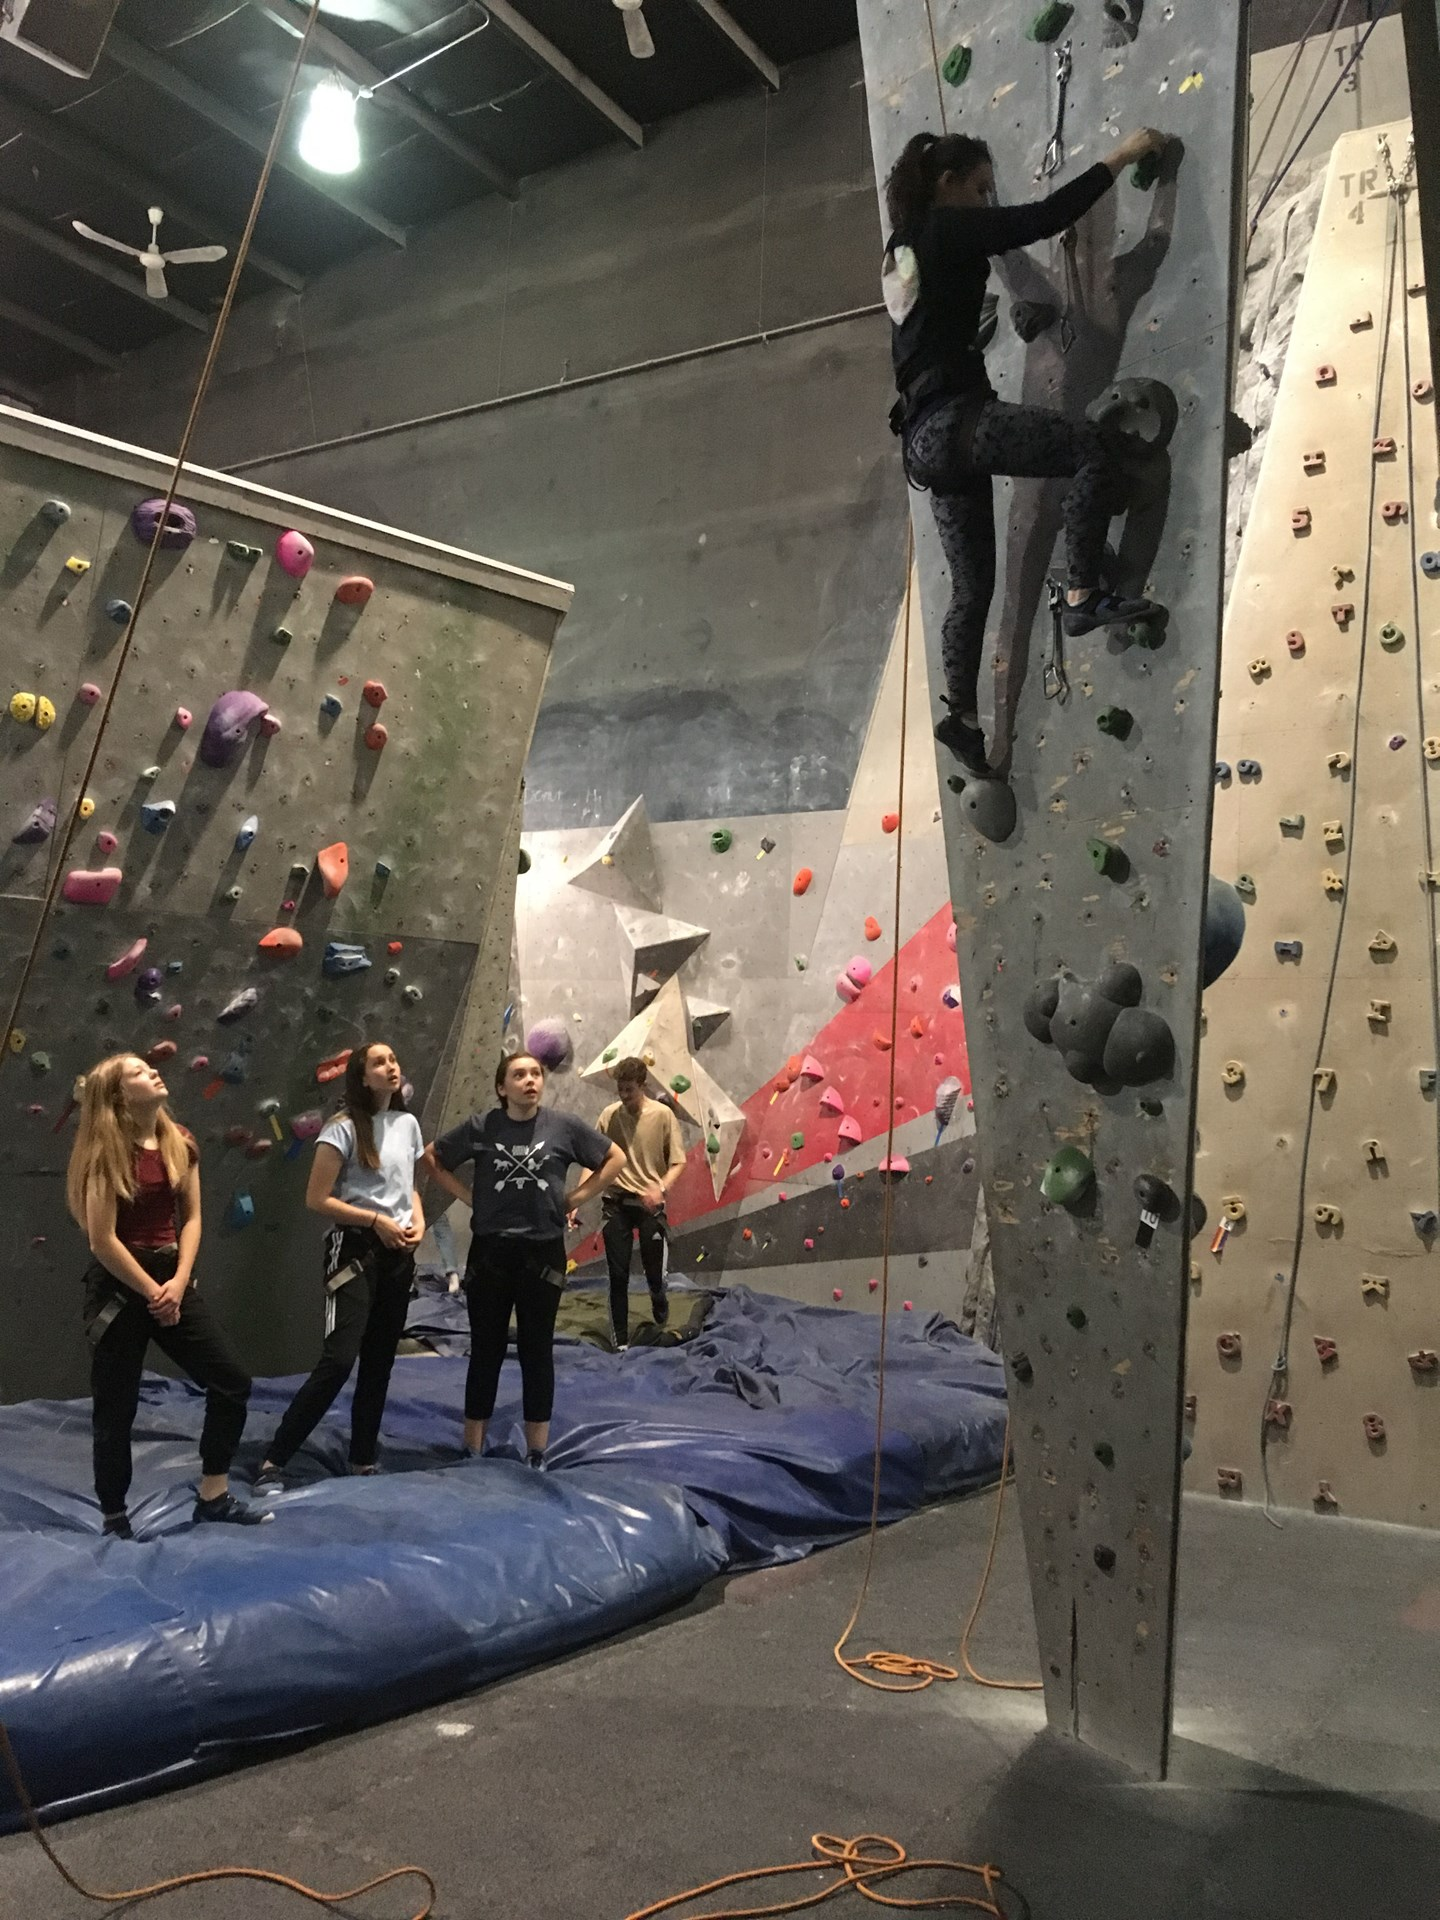 Outood Ed 2018 Indoor Rock Climbing 3.jpg